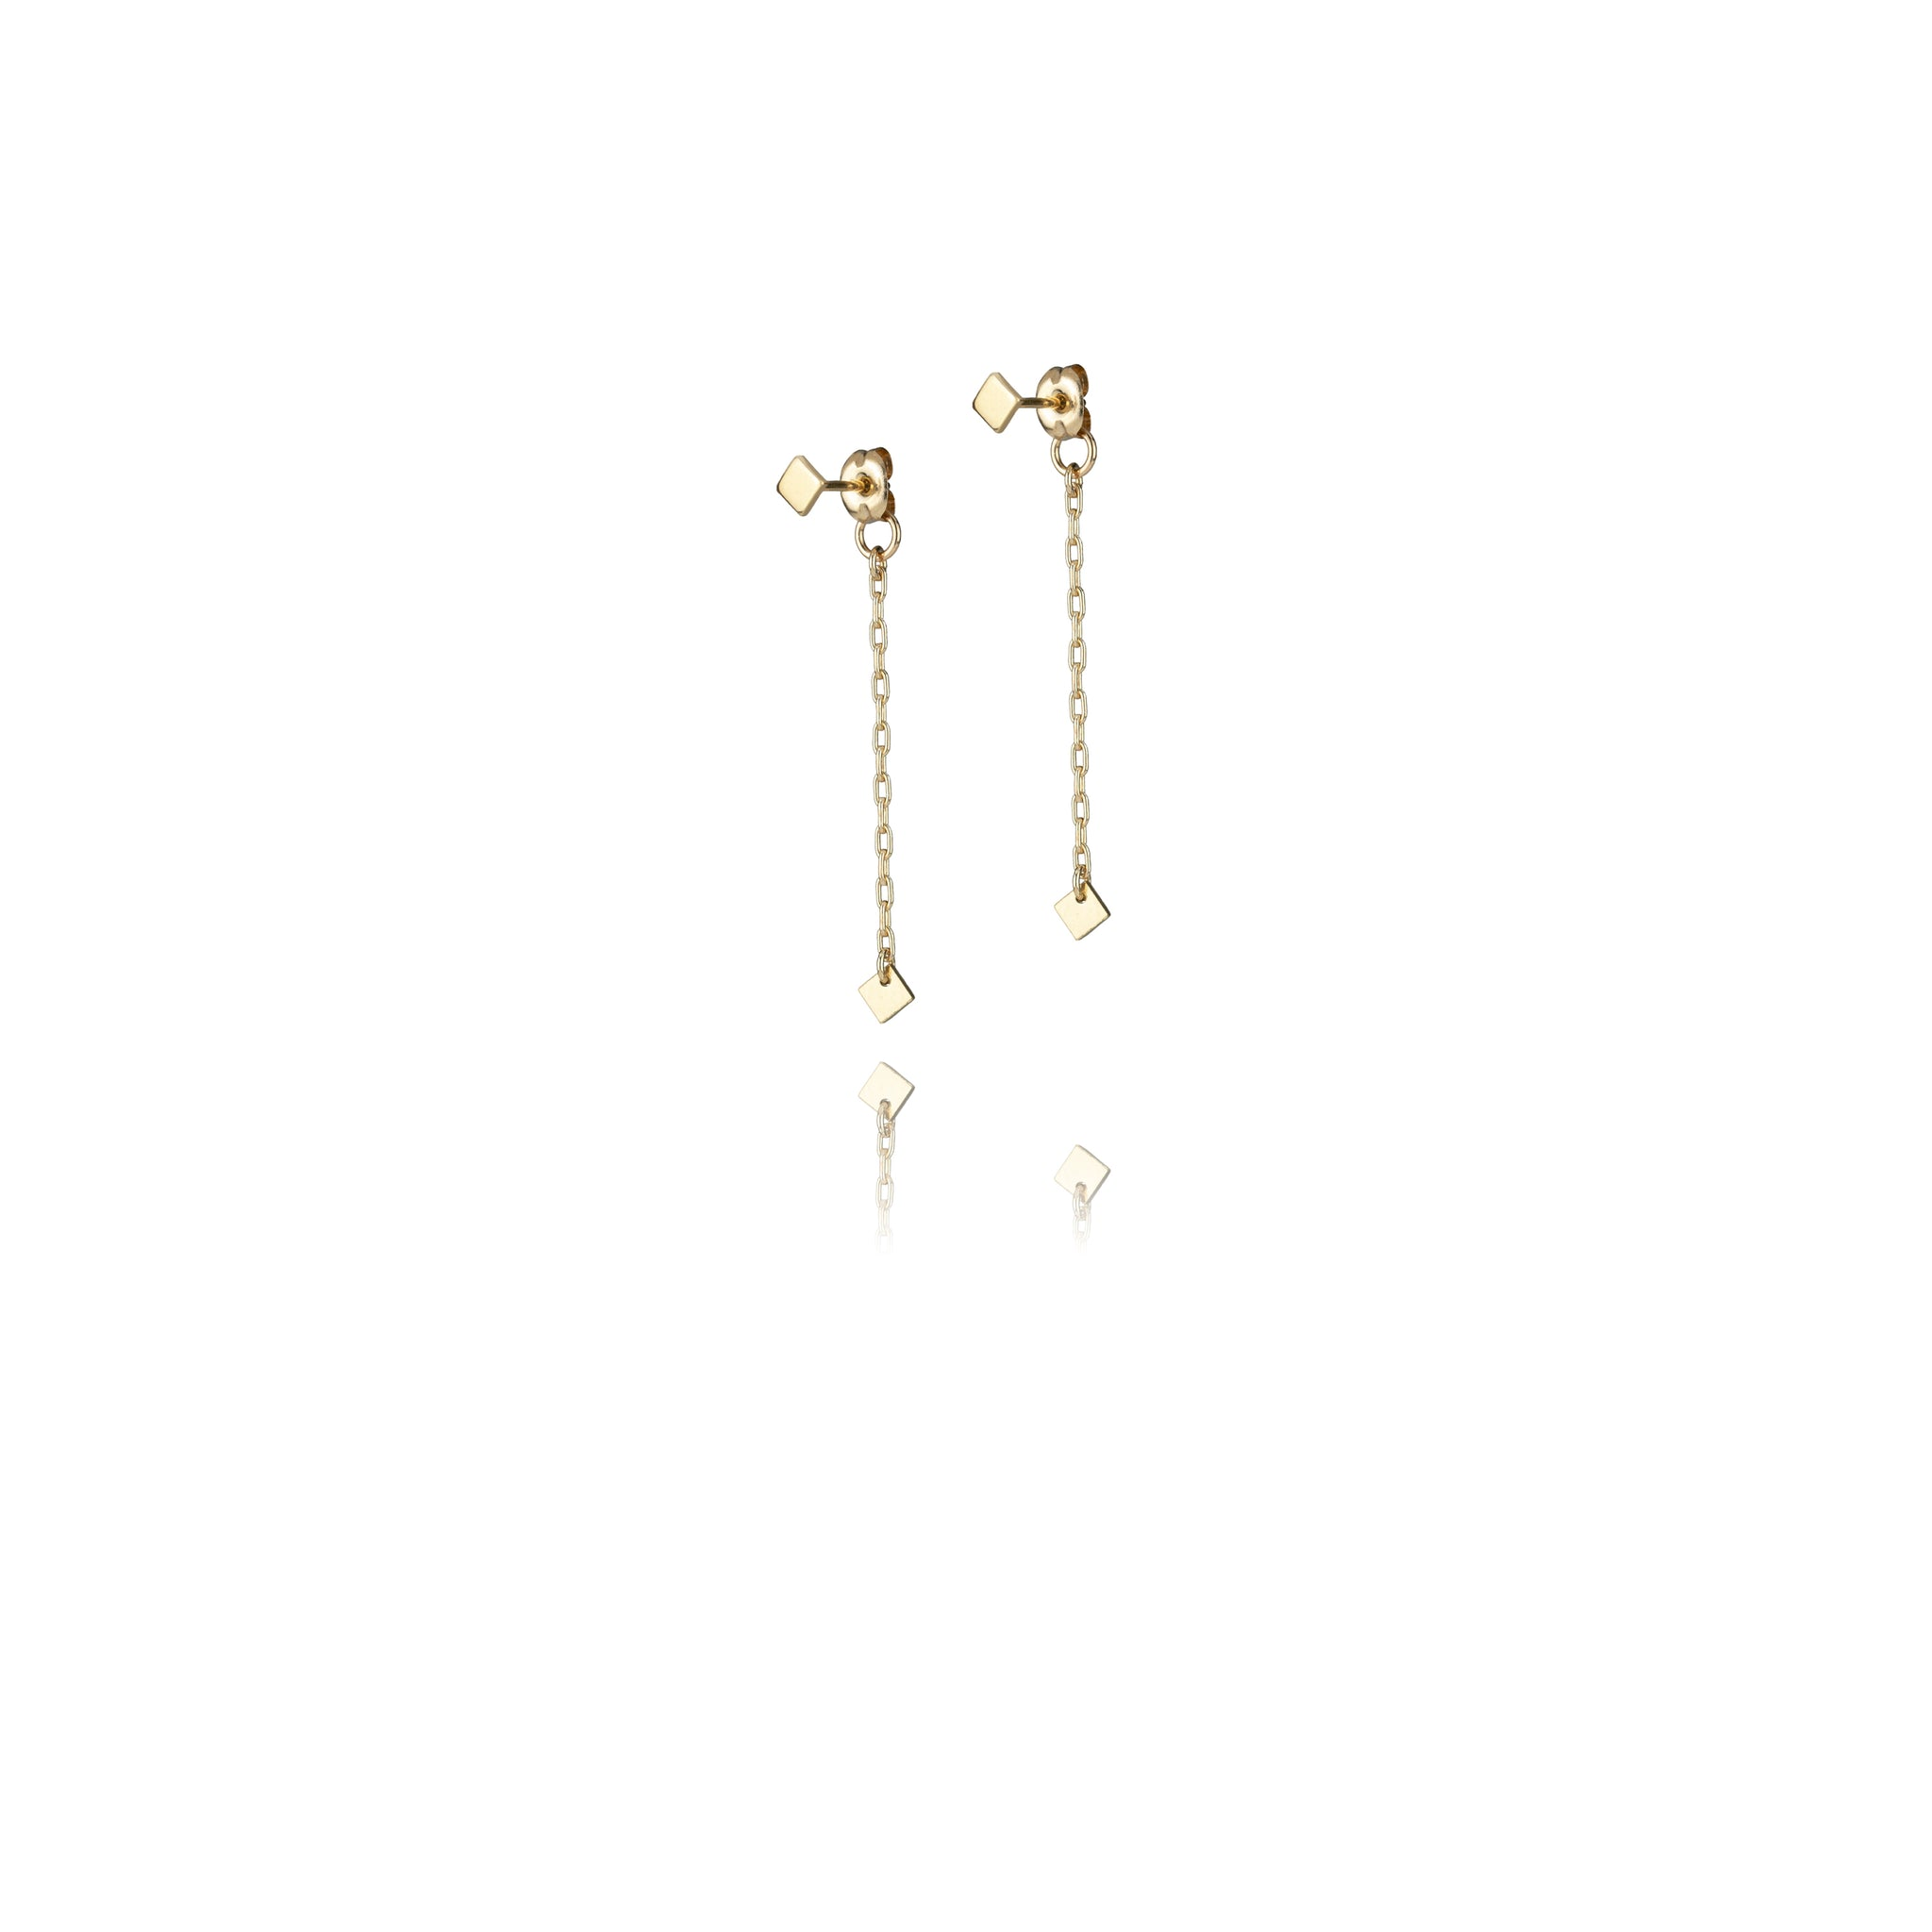 Micro Quad Droplet Earrings